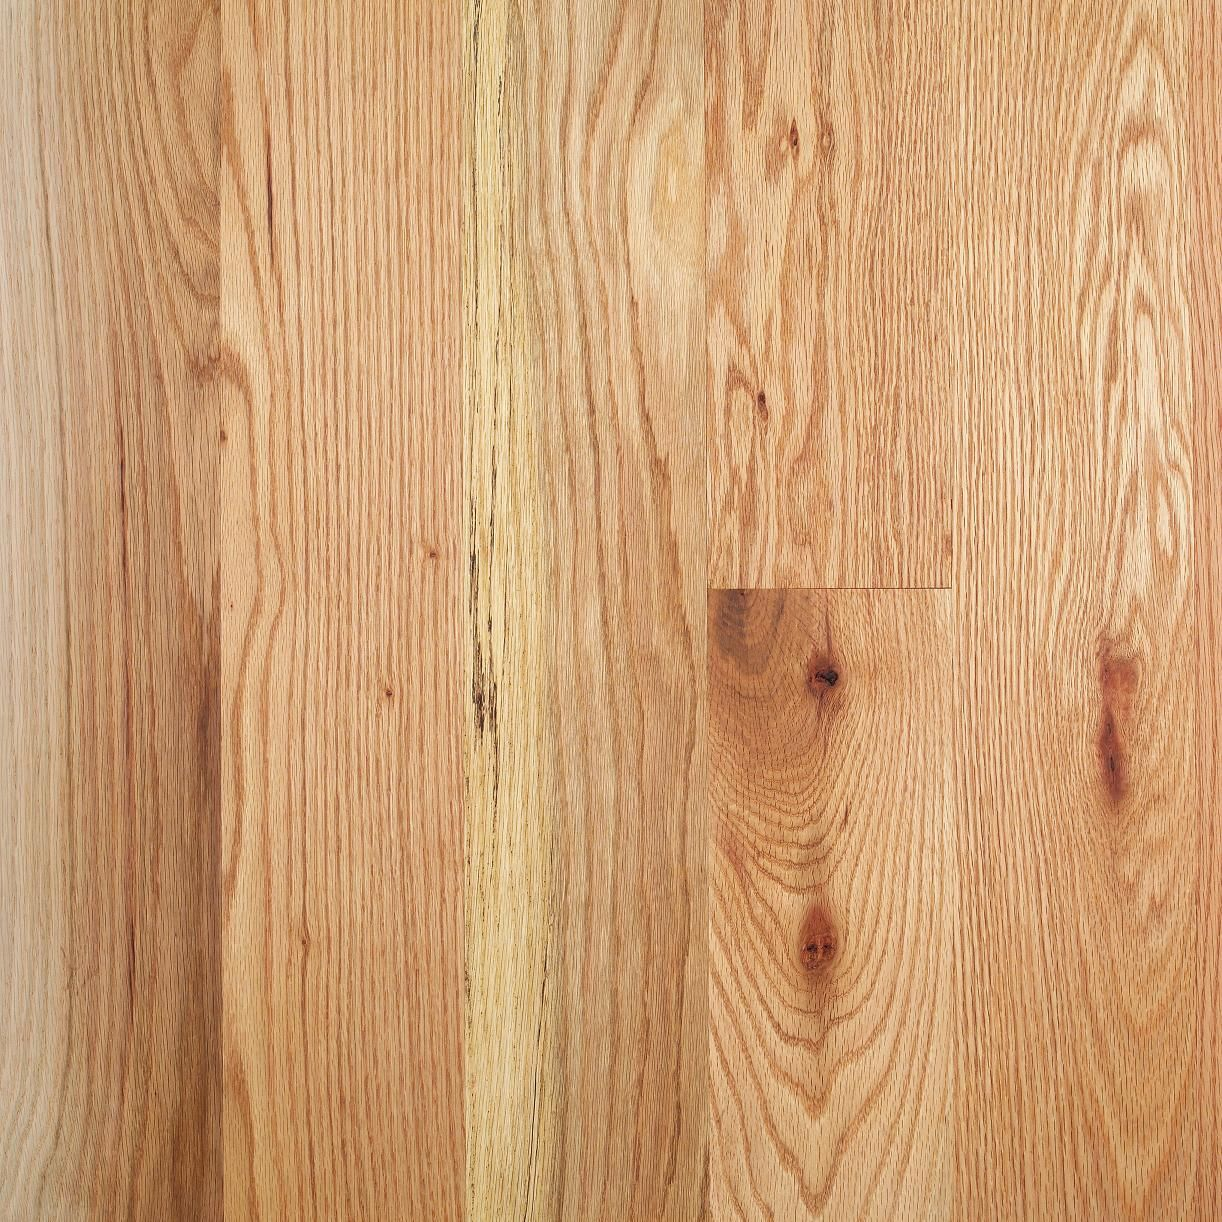 This Is Also Natural Red Oak In A 2 Grade Also Referred